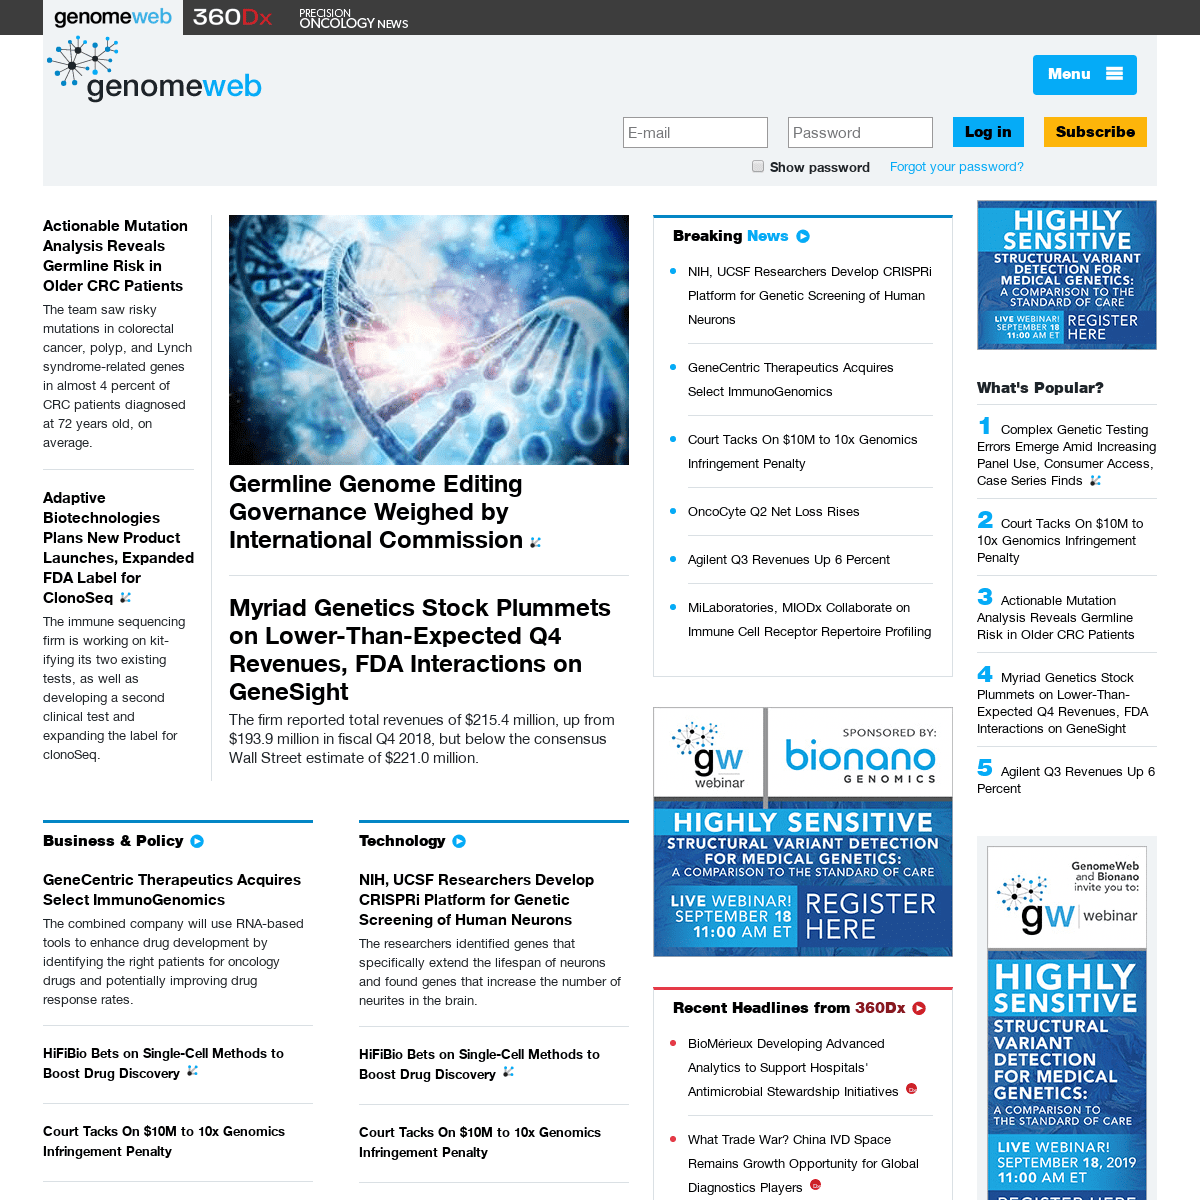 ArchiveBay.com - genomeweb.com - Genetics, Genomics & Molecular Diagnostics News by GenomeWeb